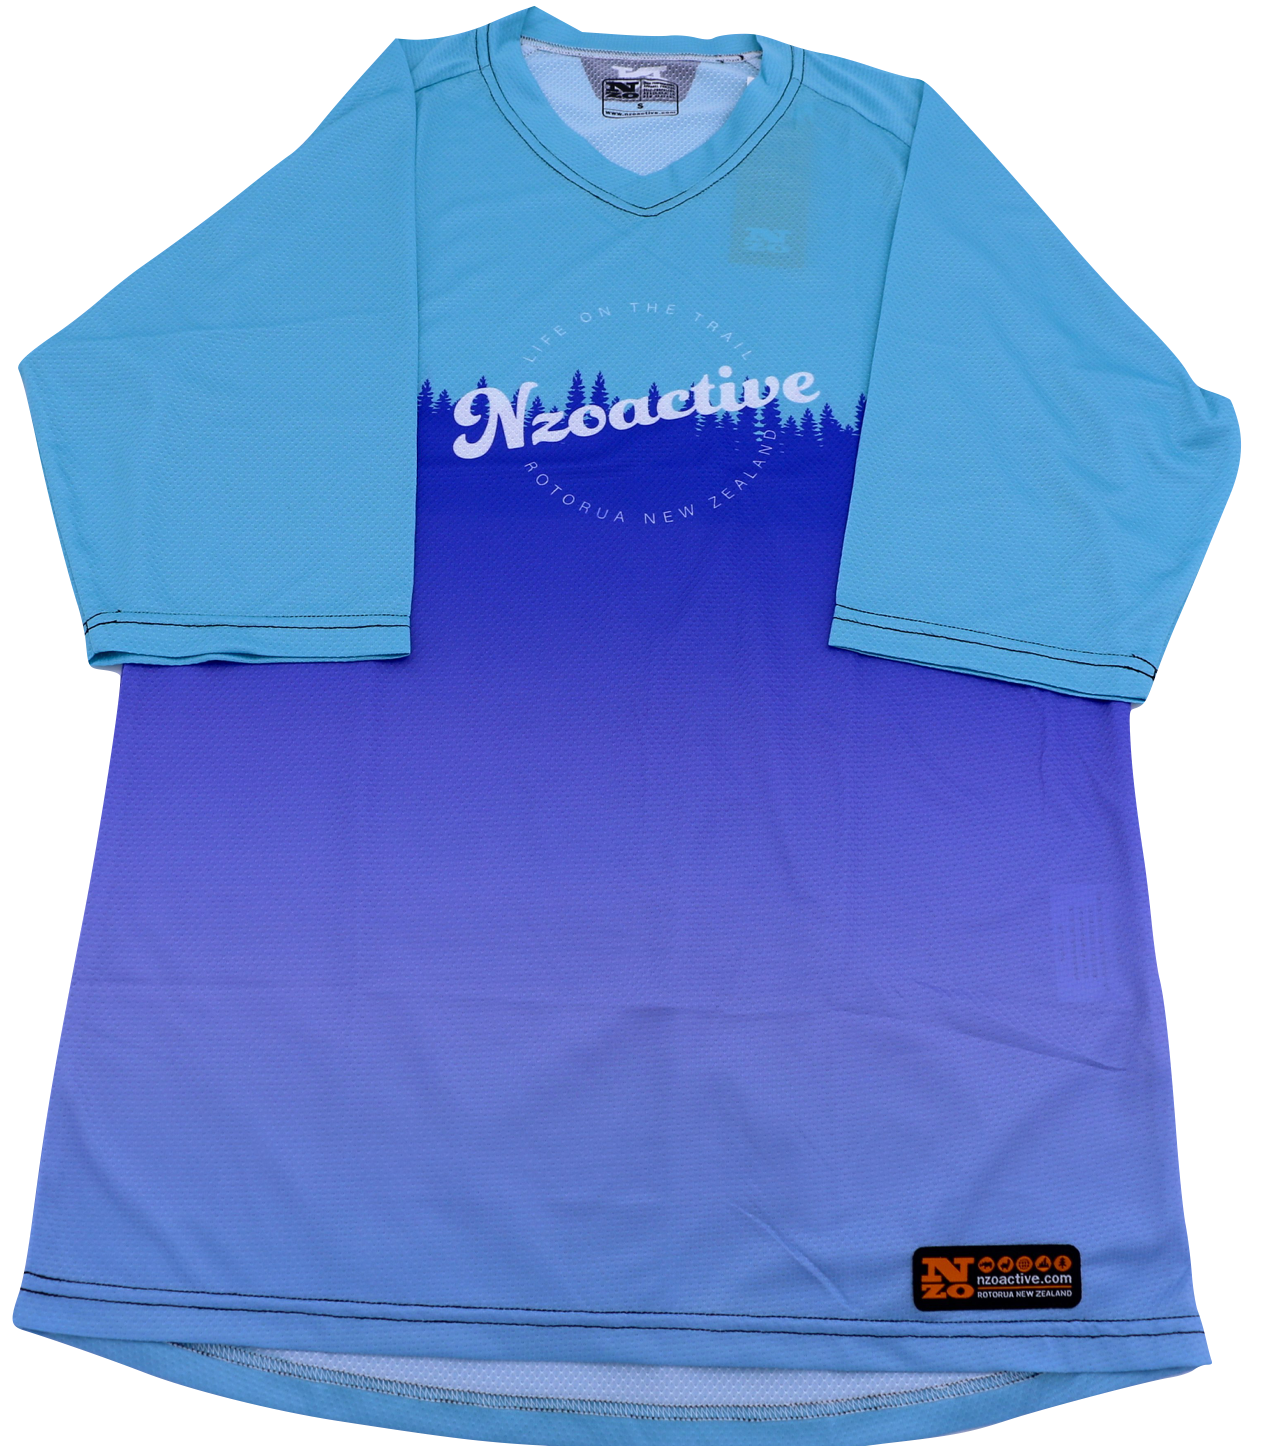 Womens Bike Trail T Jersey - Nzo DESIGN 039-1